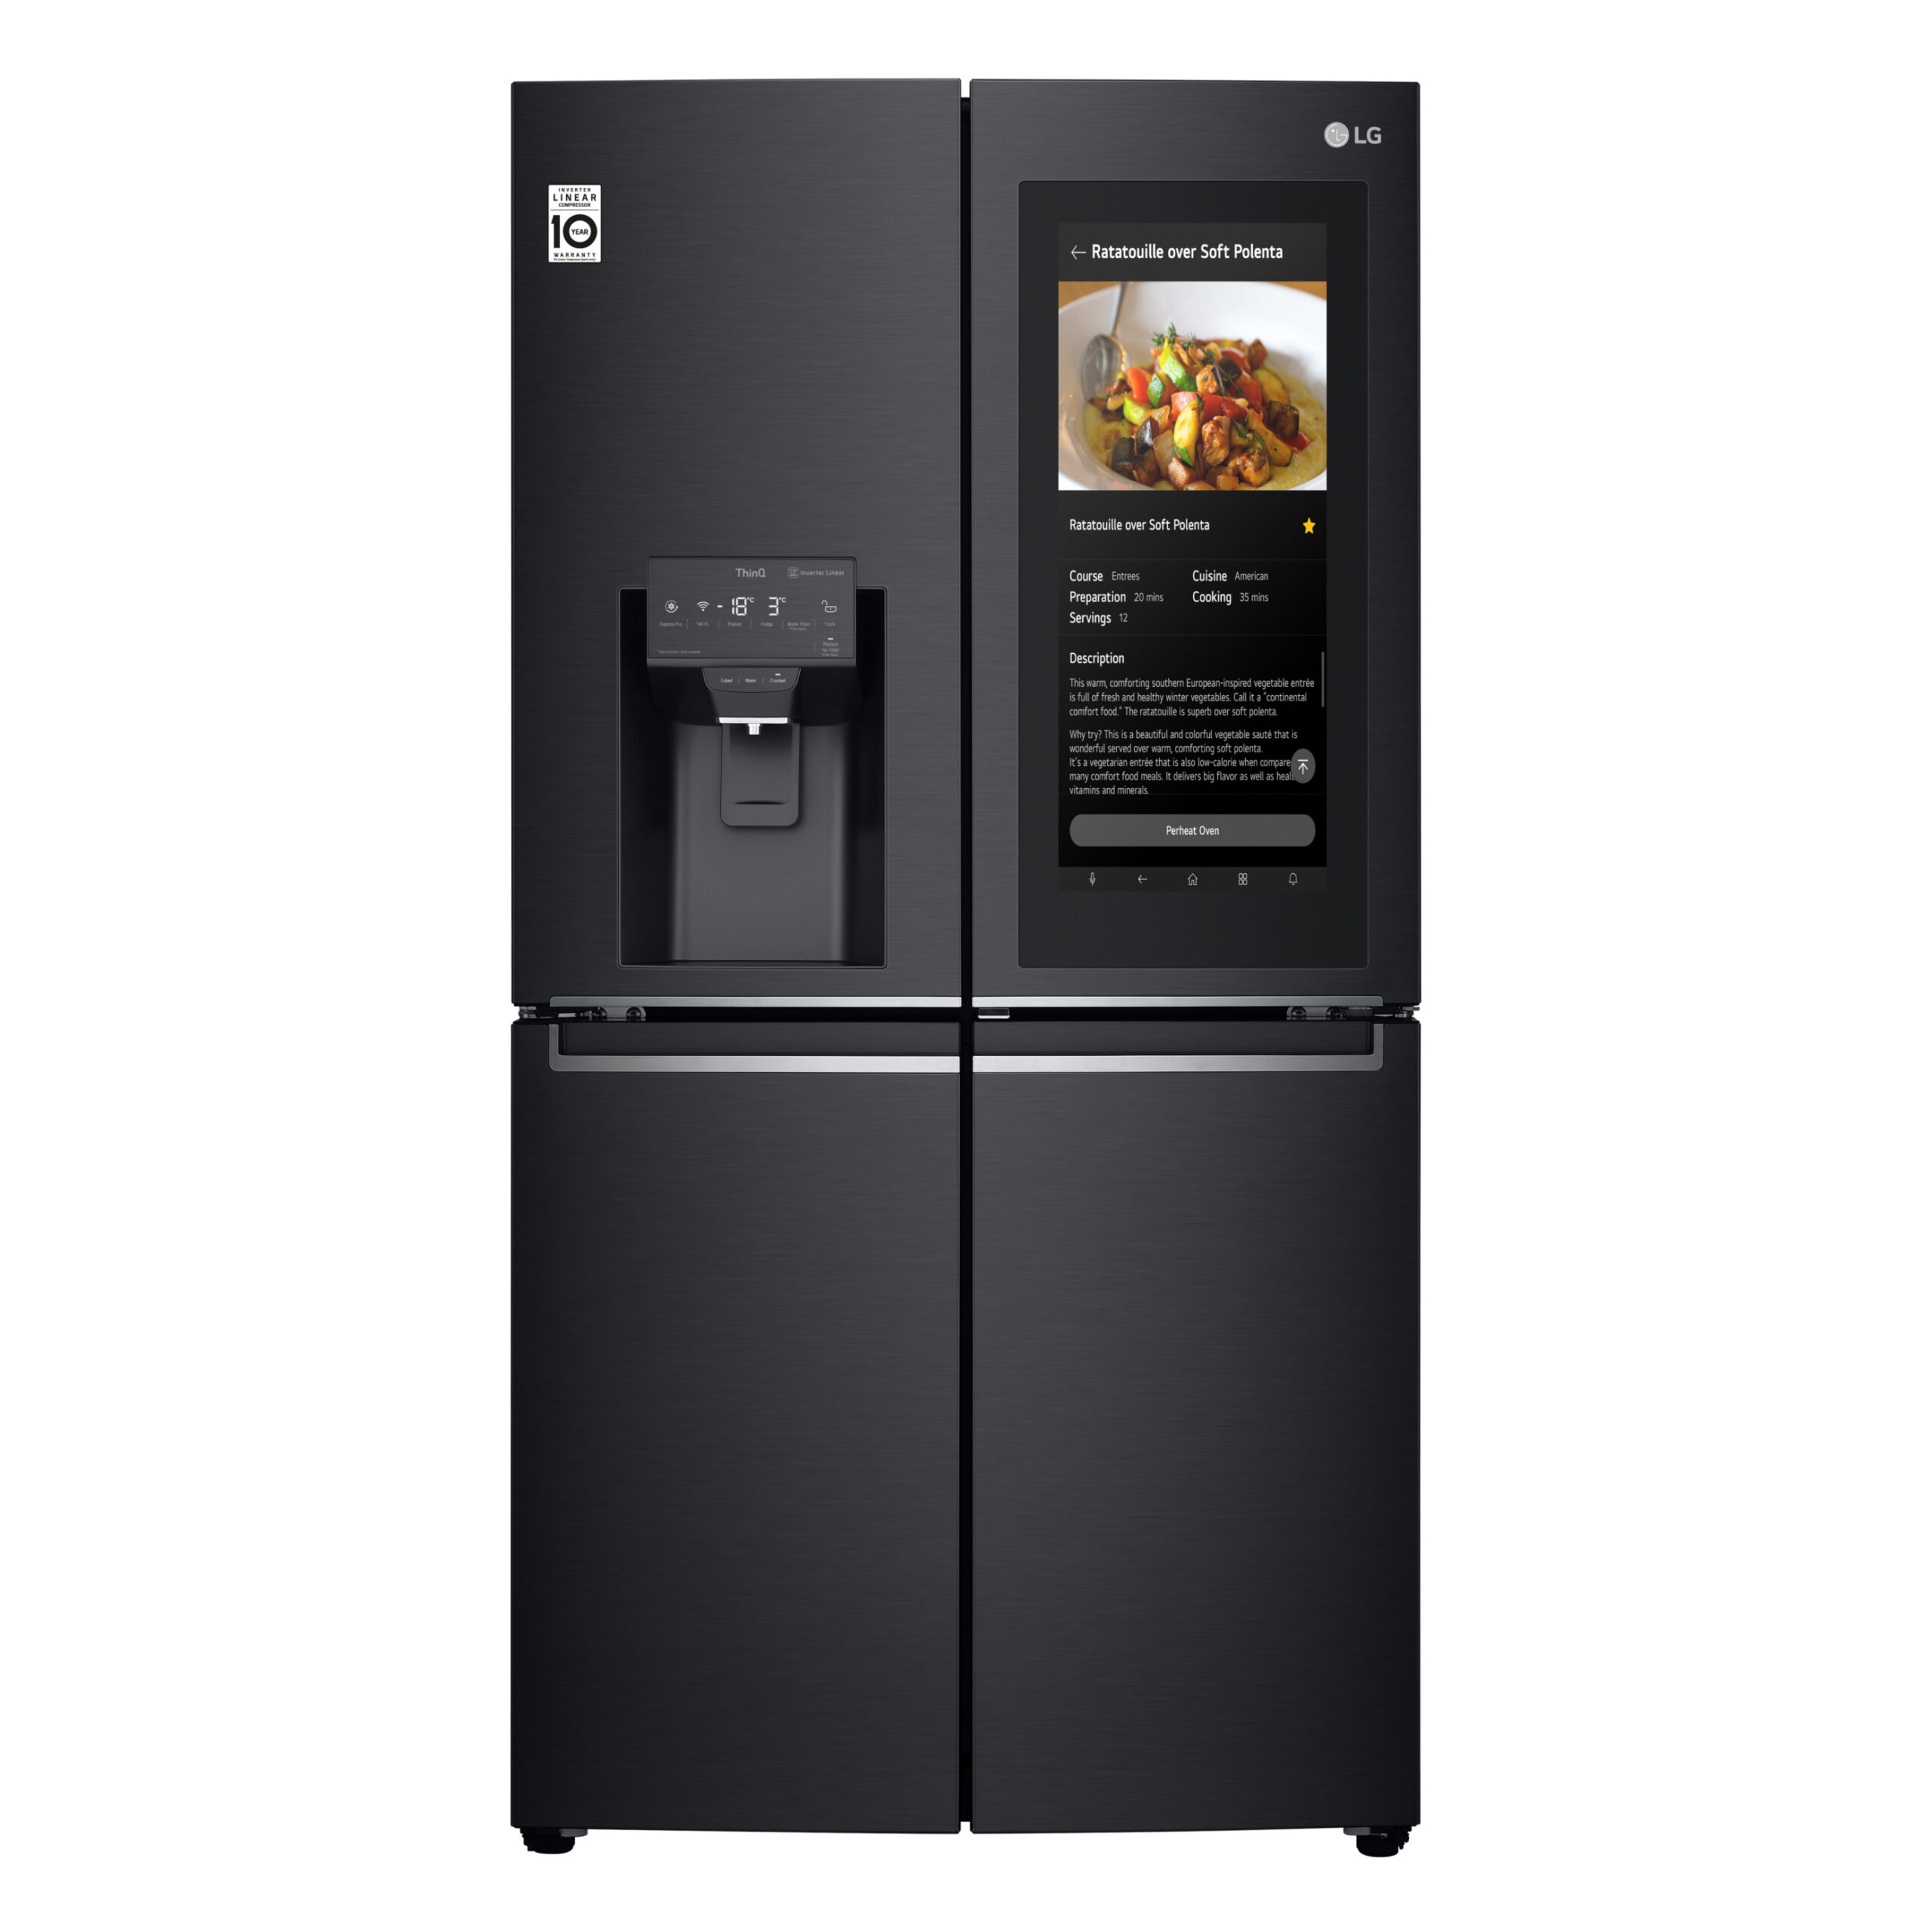 Front view of the latest InstaView ThinQ refrigerator with the InstaView showing a recipe